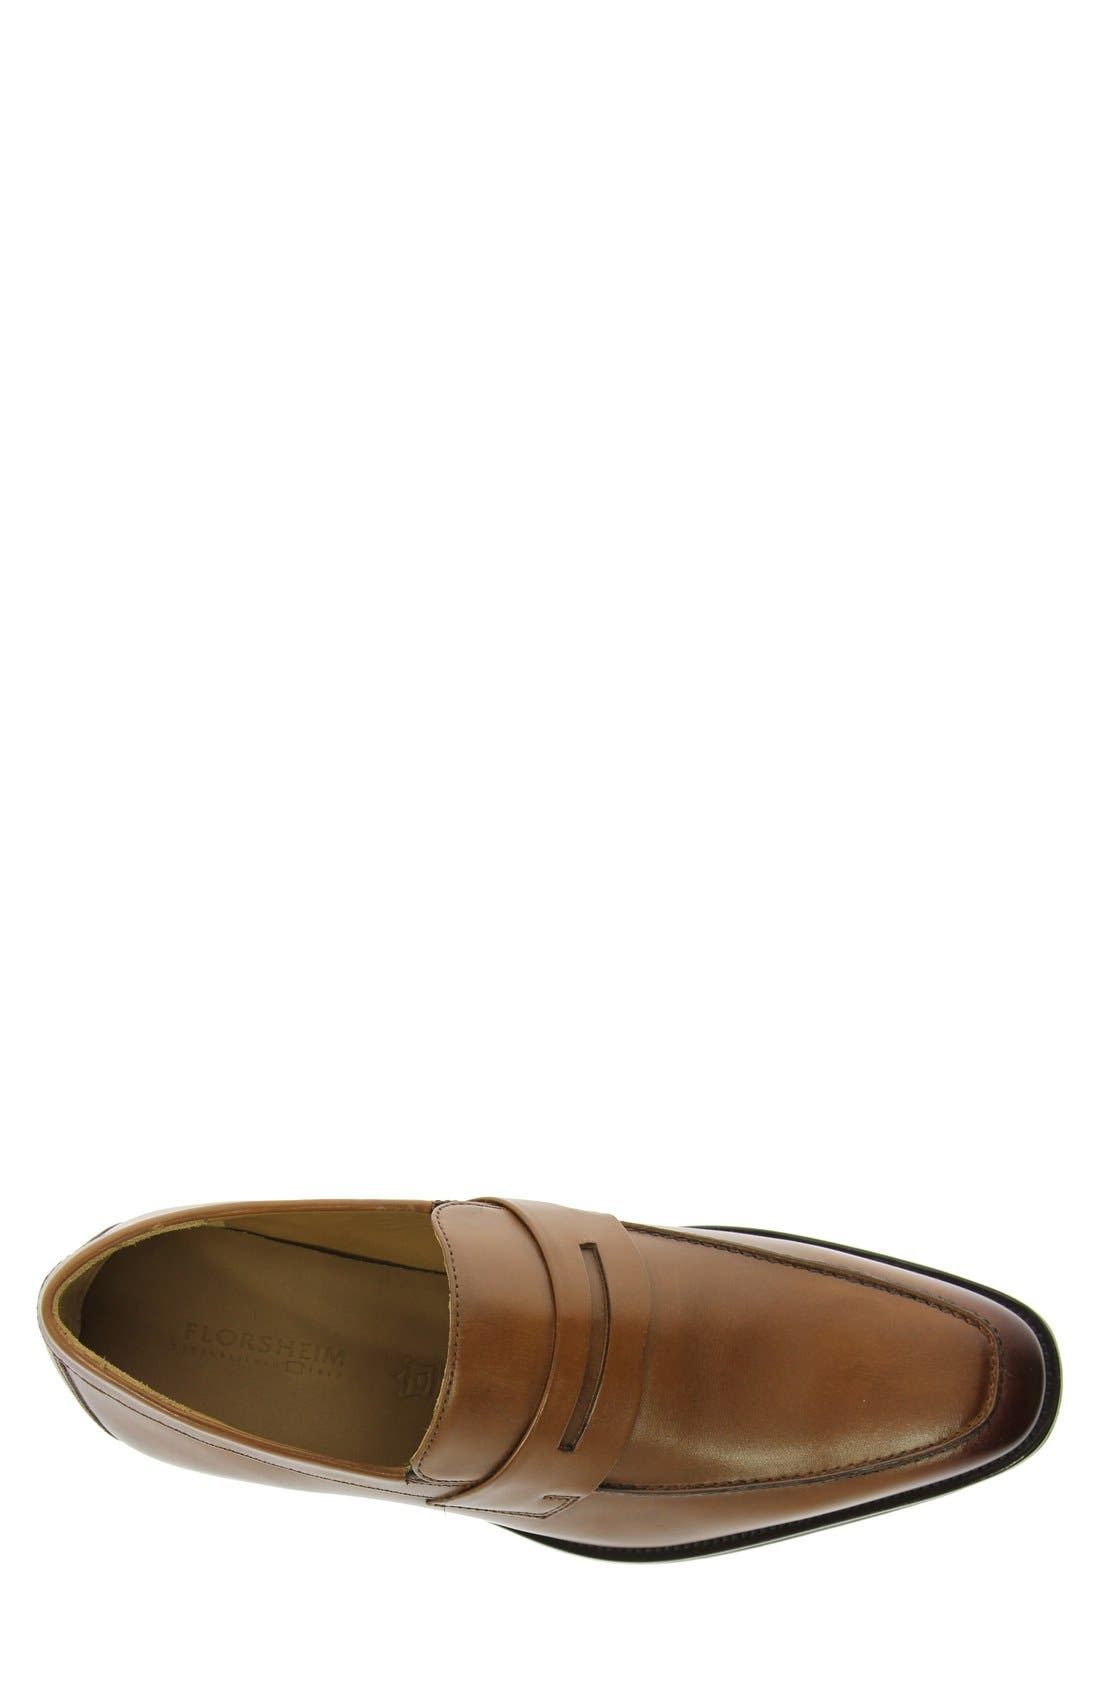 Alternate Image 3  - Florsheim 'Sabato' Penny Loafer (Men)